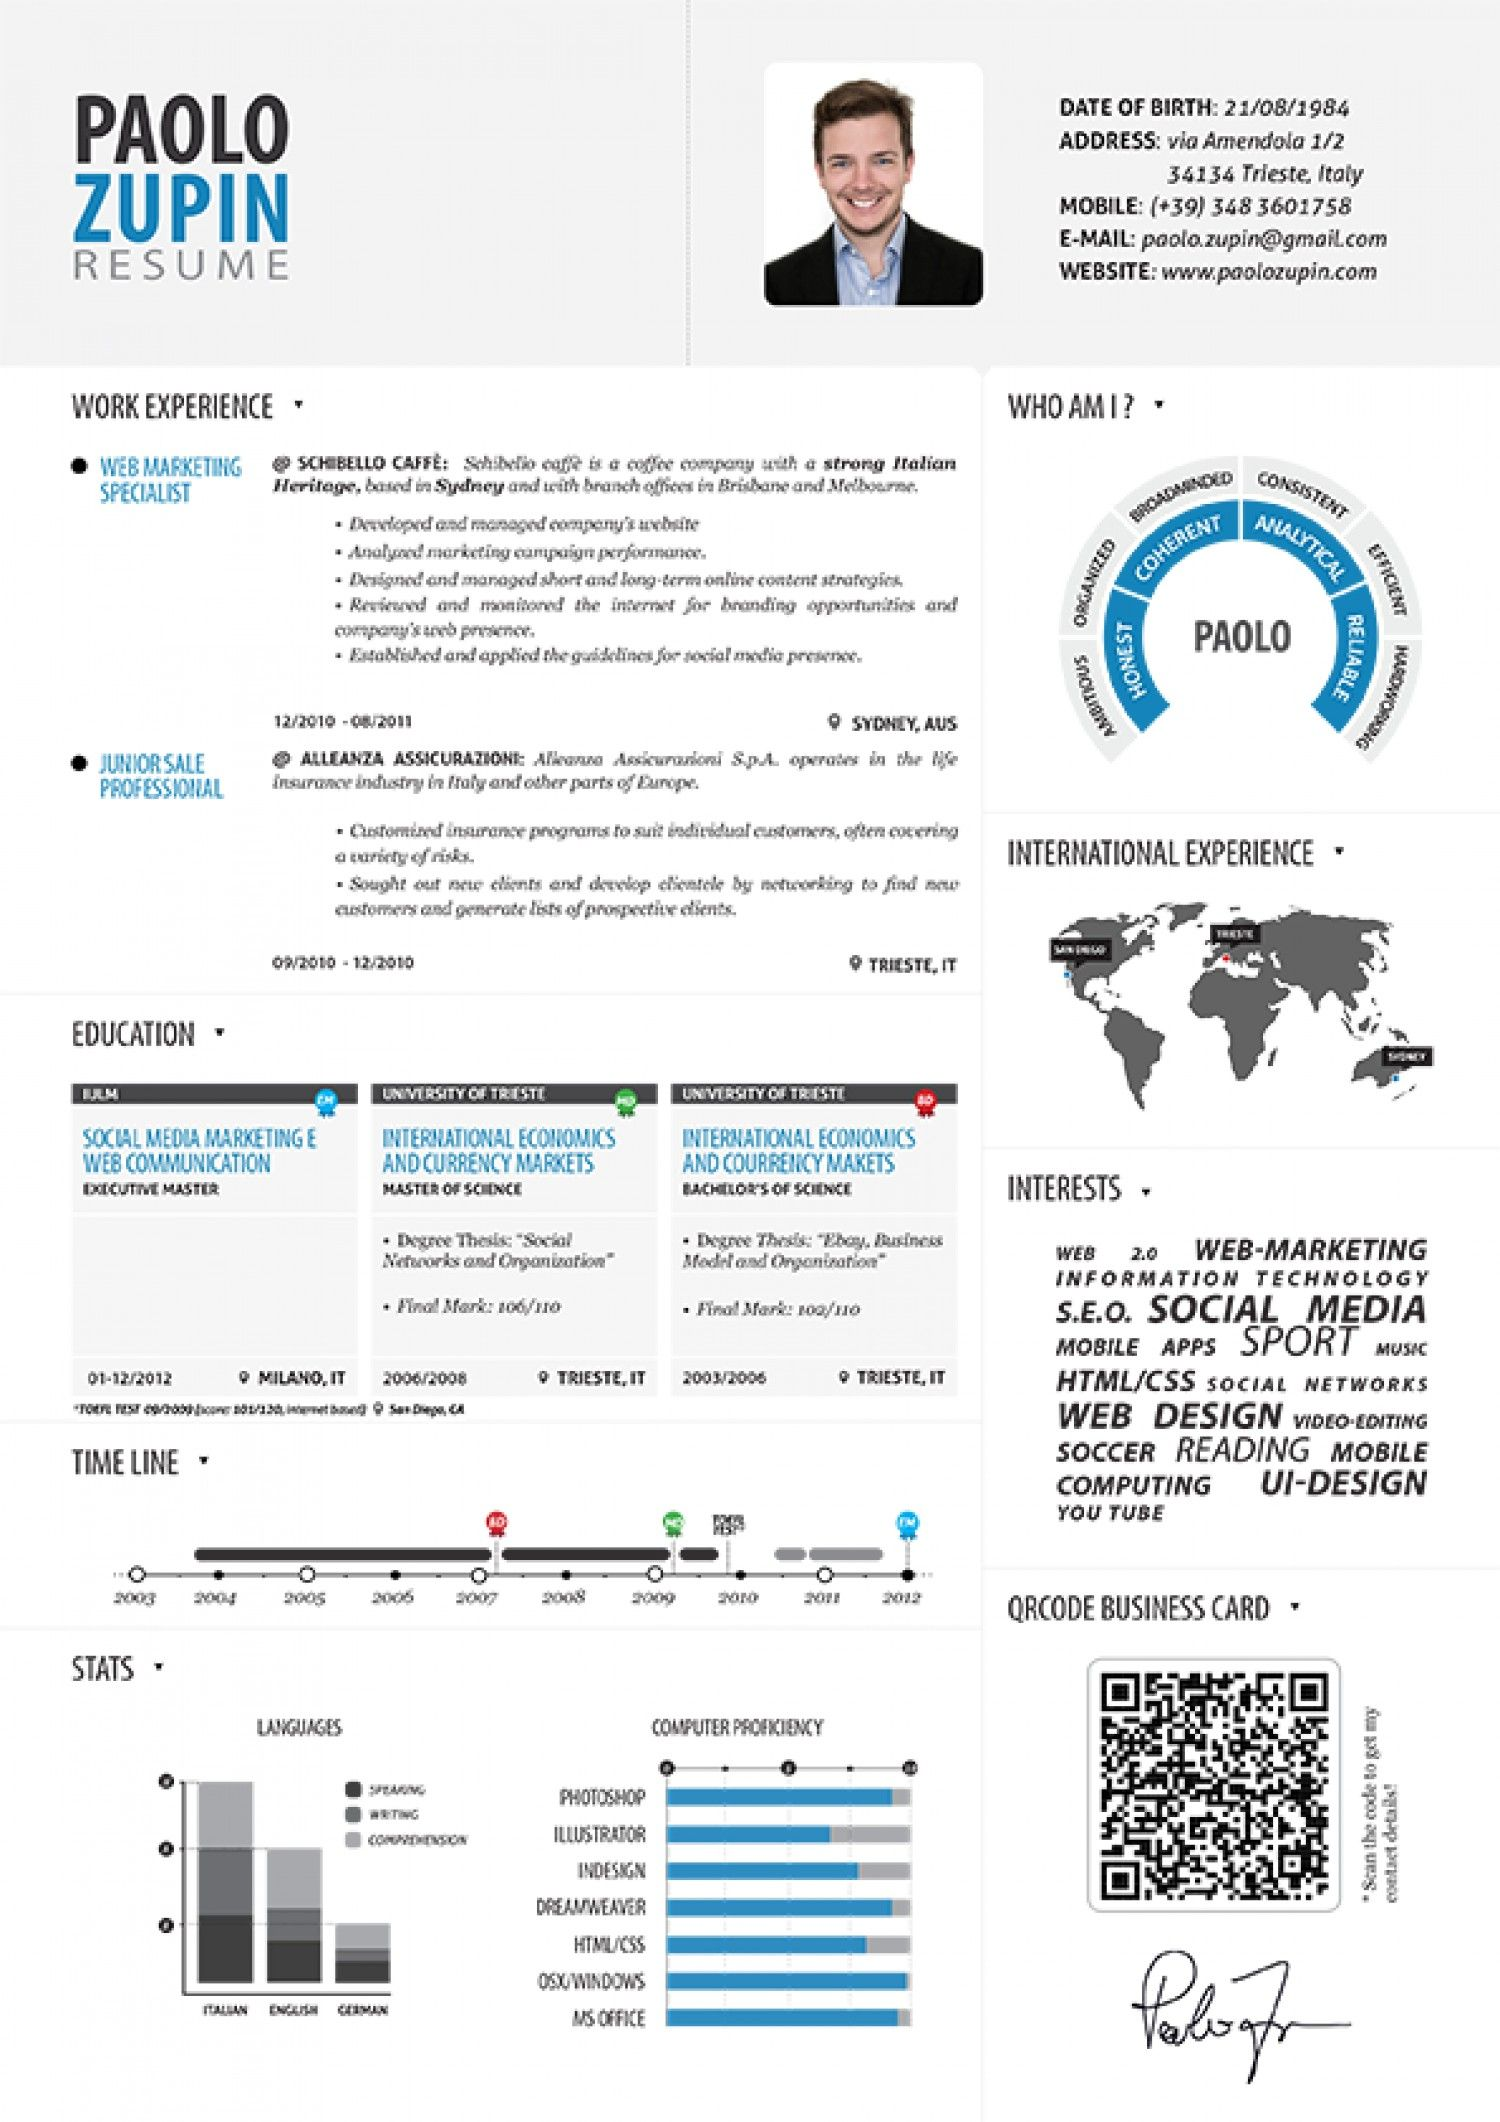 Opposenewapstandardsus  Remarkable  Images About Resume  Cv Design On Pinterest  Infographic  With Fair  Images About Resume  Cv Design On Pinterest  Infographic Resume Resume And Resume Design With Beautiful Pdf Resume Also Examples Of Resume Summary In Addition Resume Cover Page Example And Culinary Resume As Well As Resume Layout Word Additionally Net Developer Resume From Pinterestcom With Opposenewapstandardsus  Fair  Images About Resume  Cv Design On Pinterest  Infographic  With Beautiful  Images About Resume  Cv Design On Pinterest  Infographic Resume Resume And Resume Design And Remarkable Pdf Resume Also Examples Of Resume Summary In Addition Resume Cover Page Example From Pinterestcom